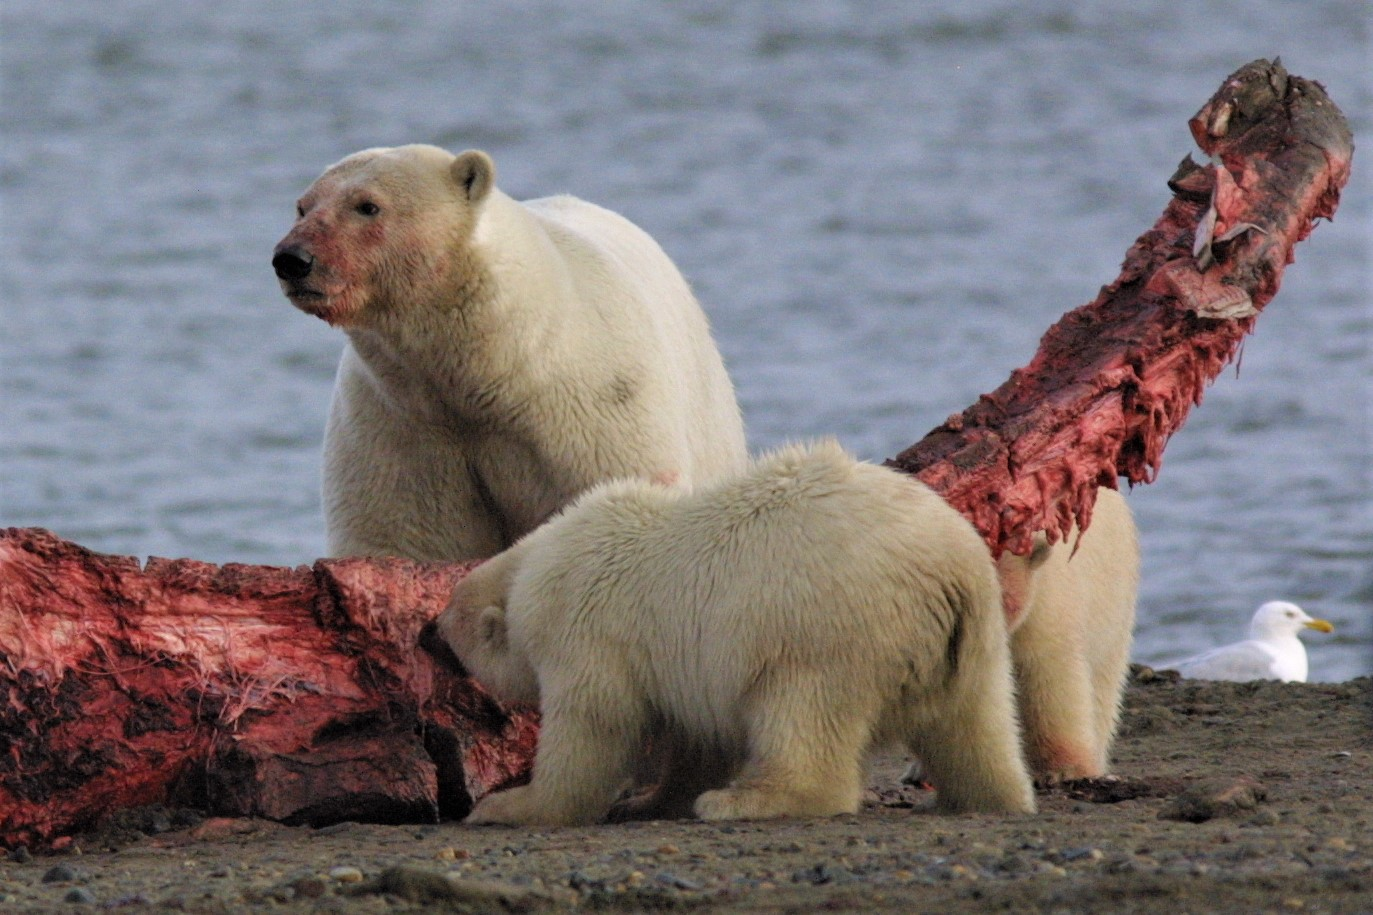 An adult polar bear and two cubs eat at a giant bone with red meat hanging from it at the edge of the ocean.